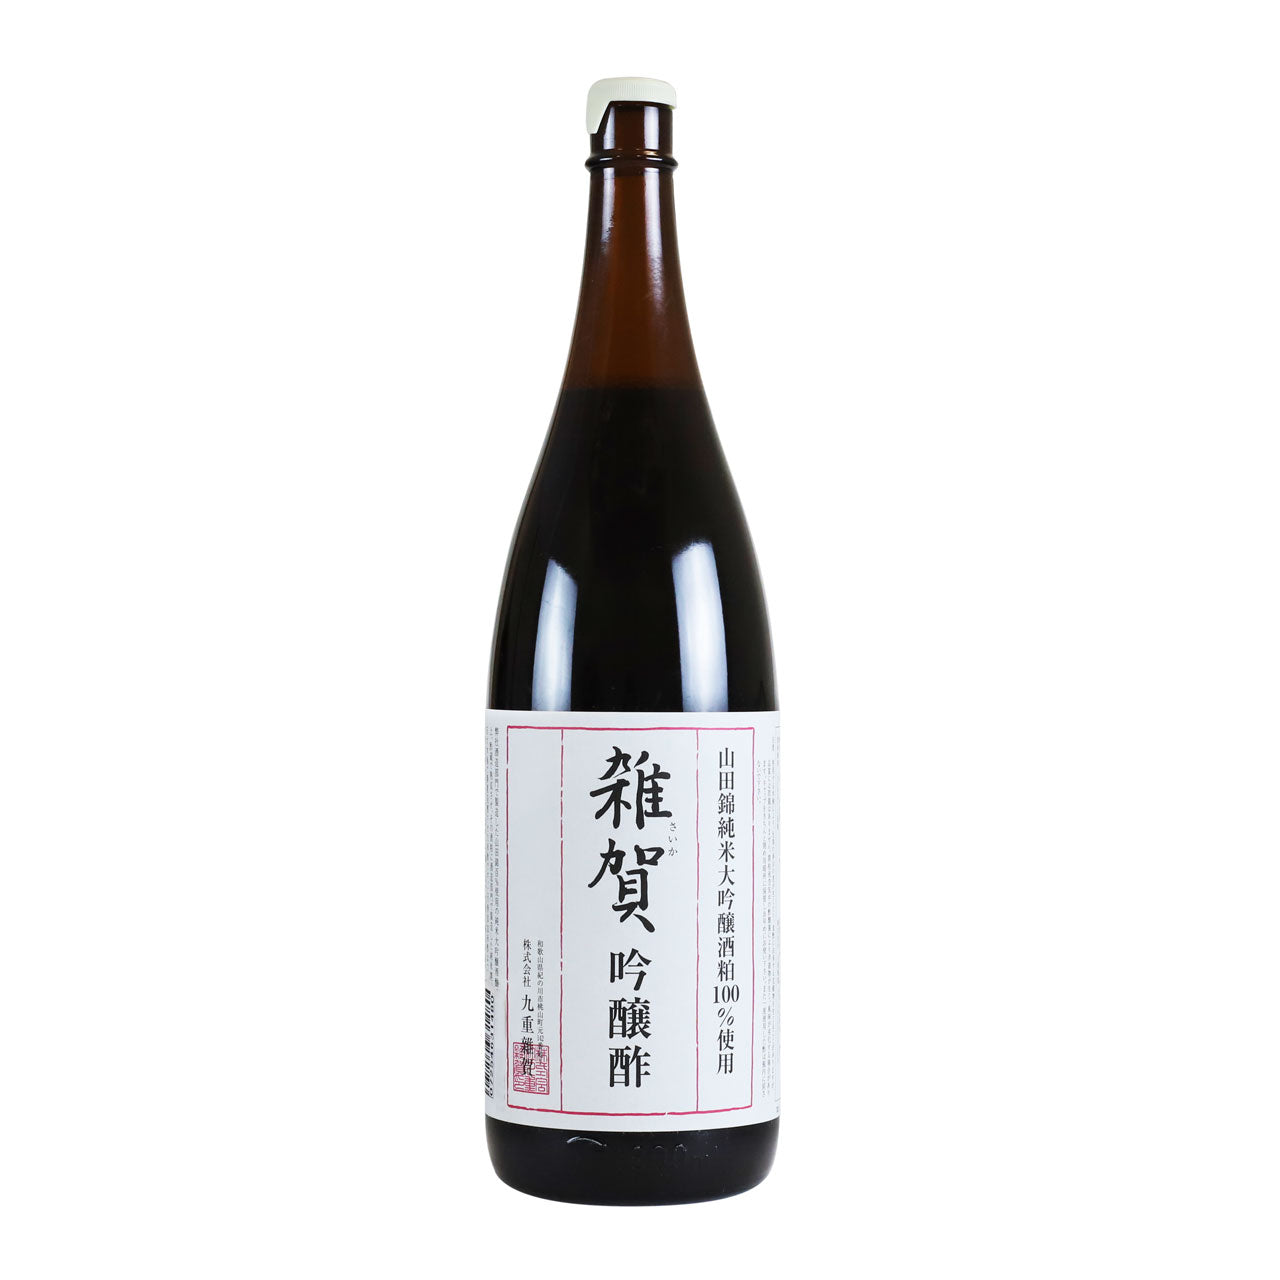 Saika Ginjyo Akazu Rice Vinegar 60.8 fl oz / 1800ml